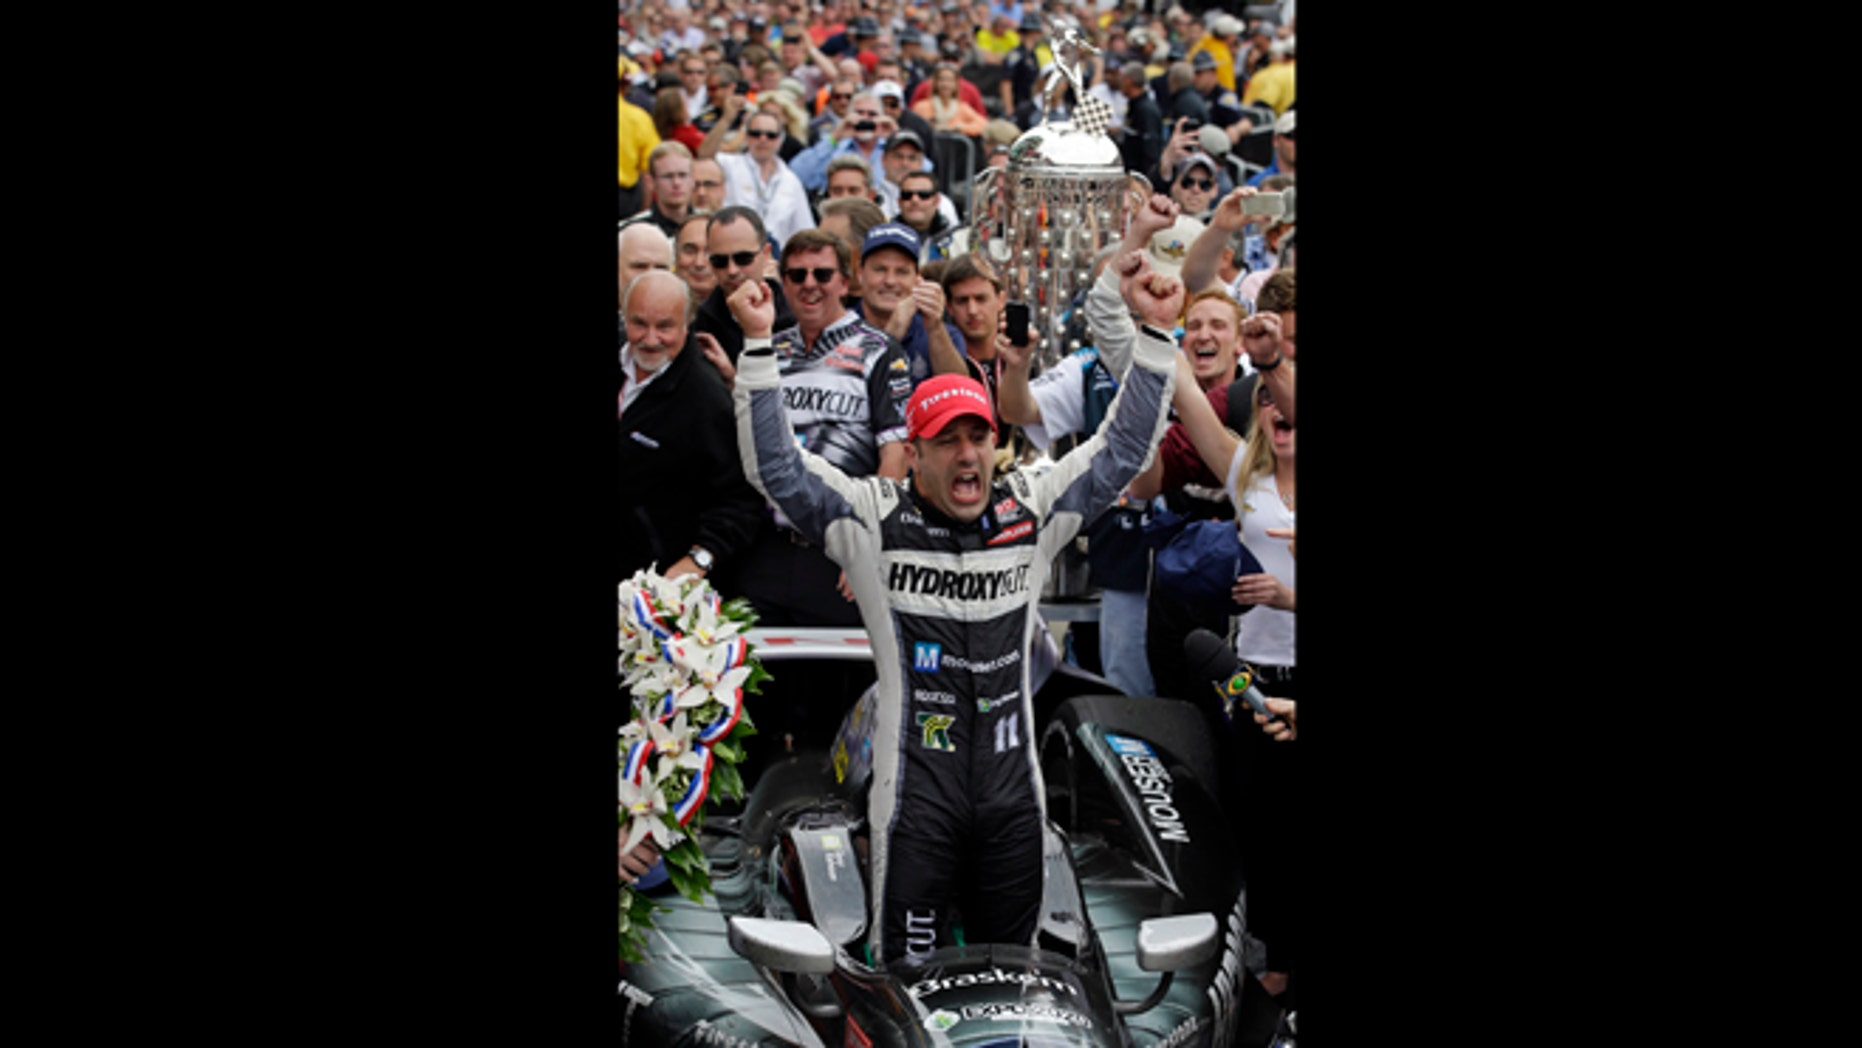 May 26, 2013: Tony Kanaan, of Brazil, celebrates after winning the Indianapolis 500 auto race at the Indianapolis Motor Speedway in Indianapolis.